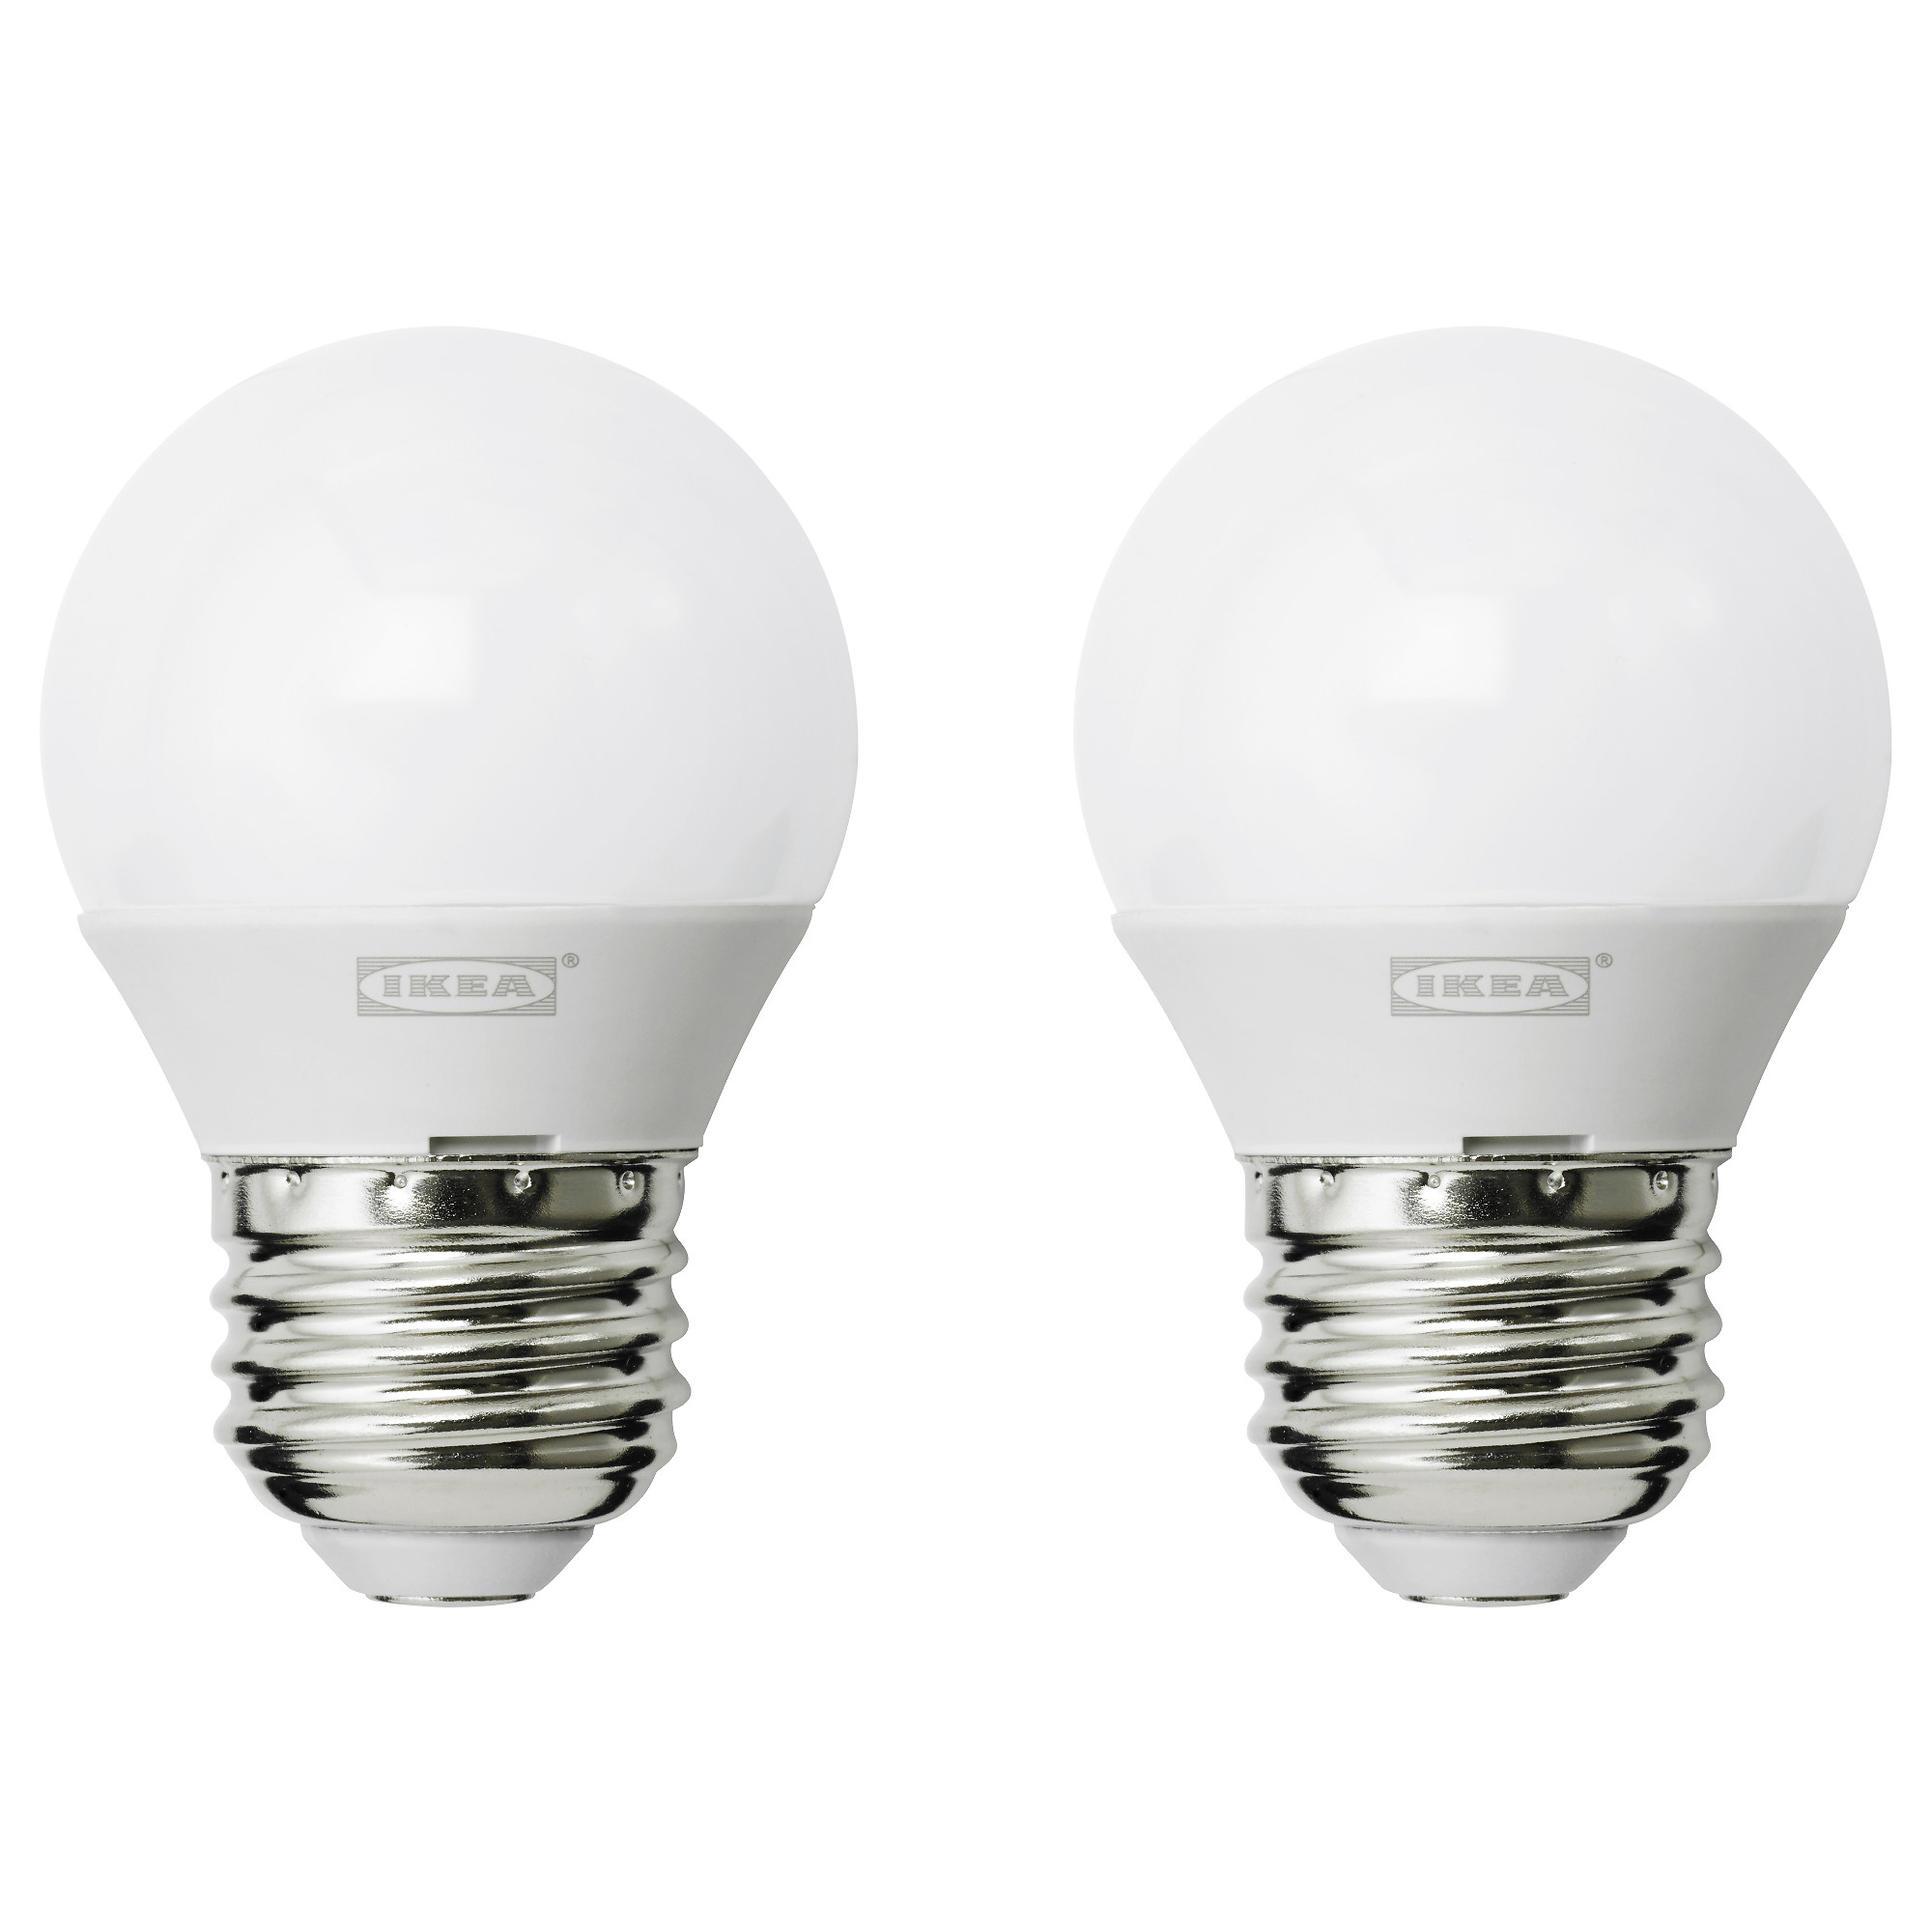 RYET LED bulb E26 200 lumen, globe opal Color temperature: 2700 K Light  output